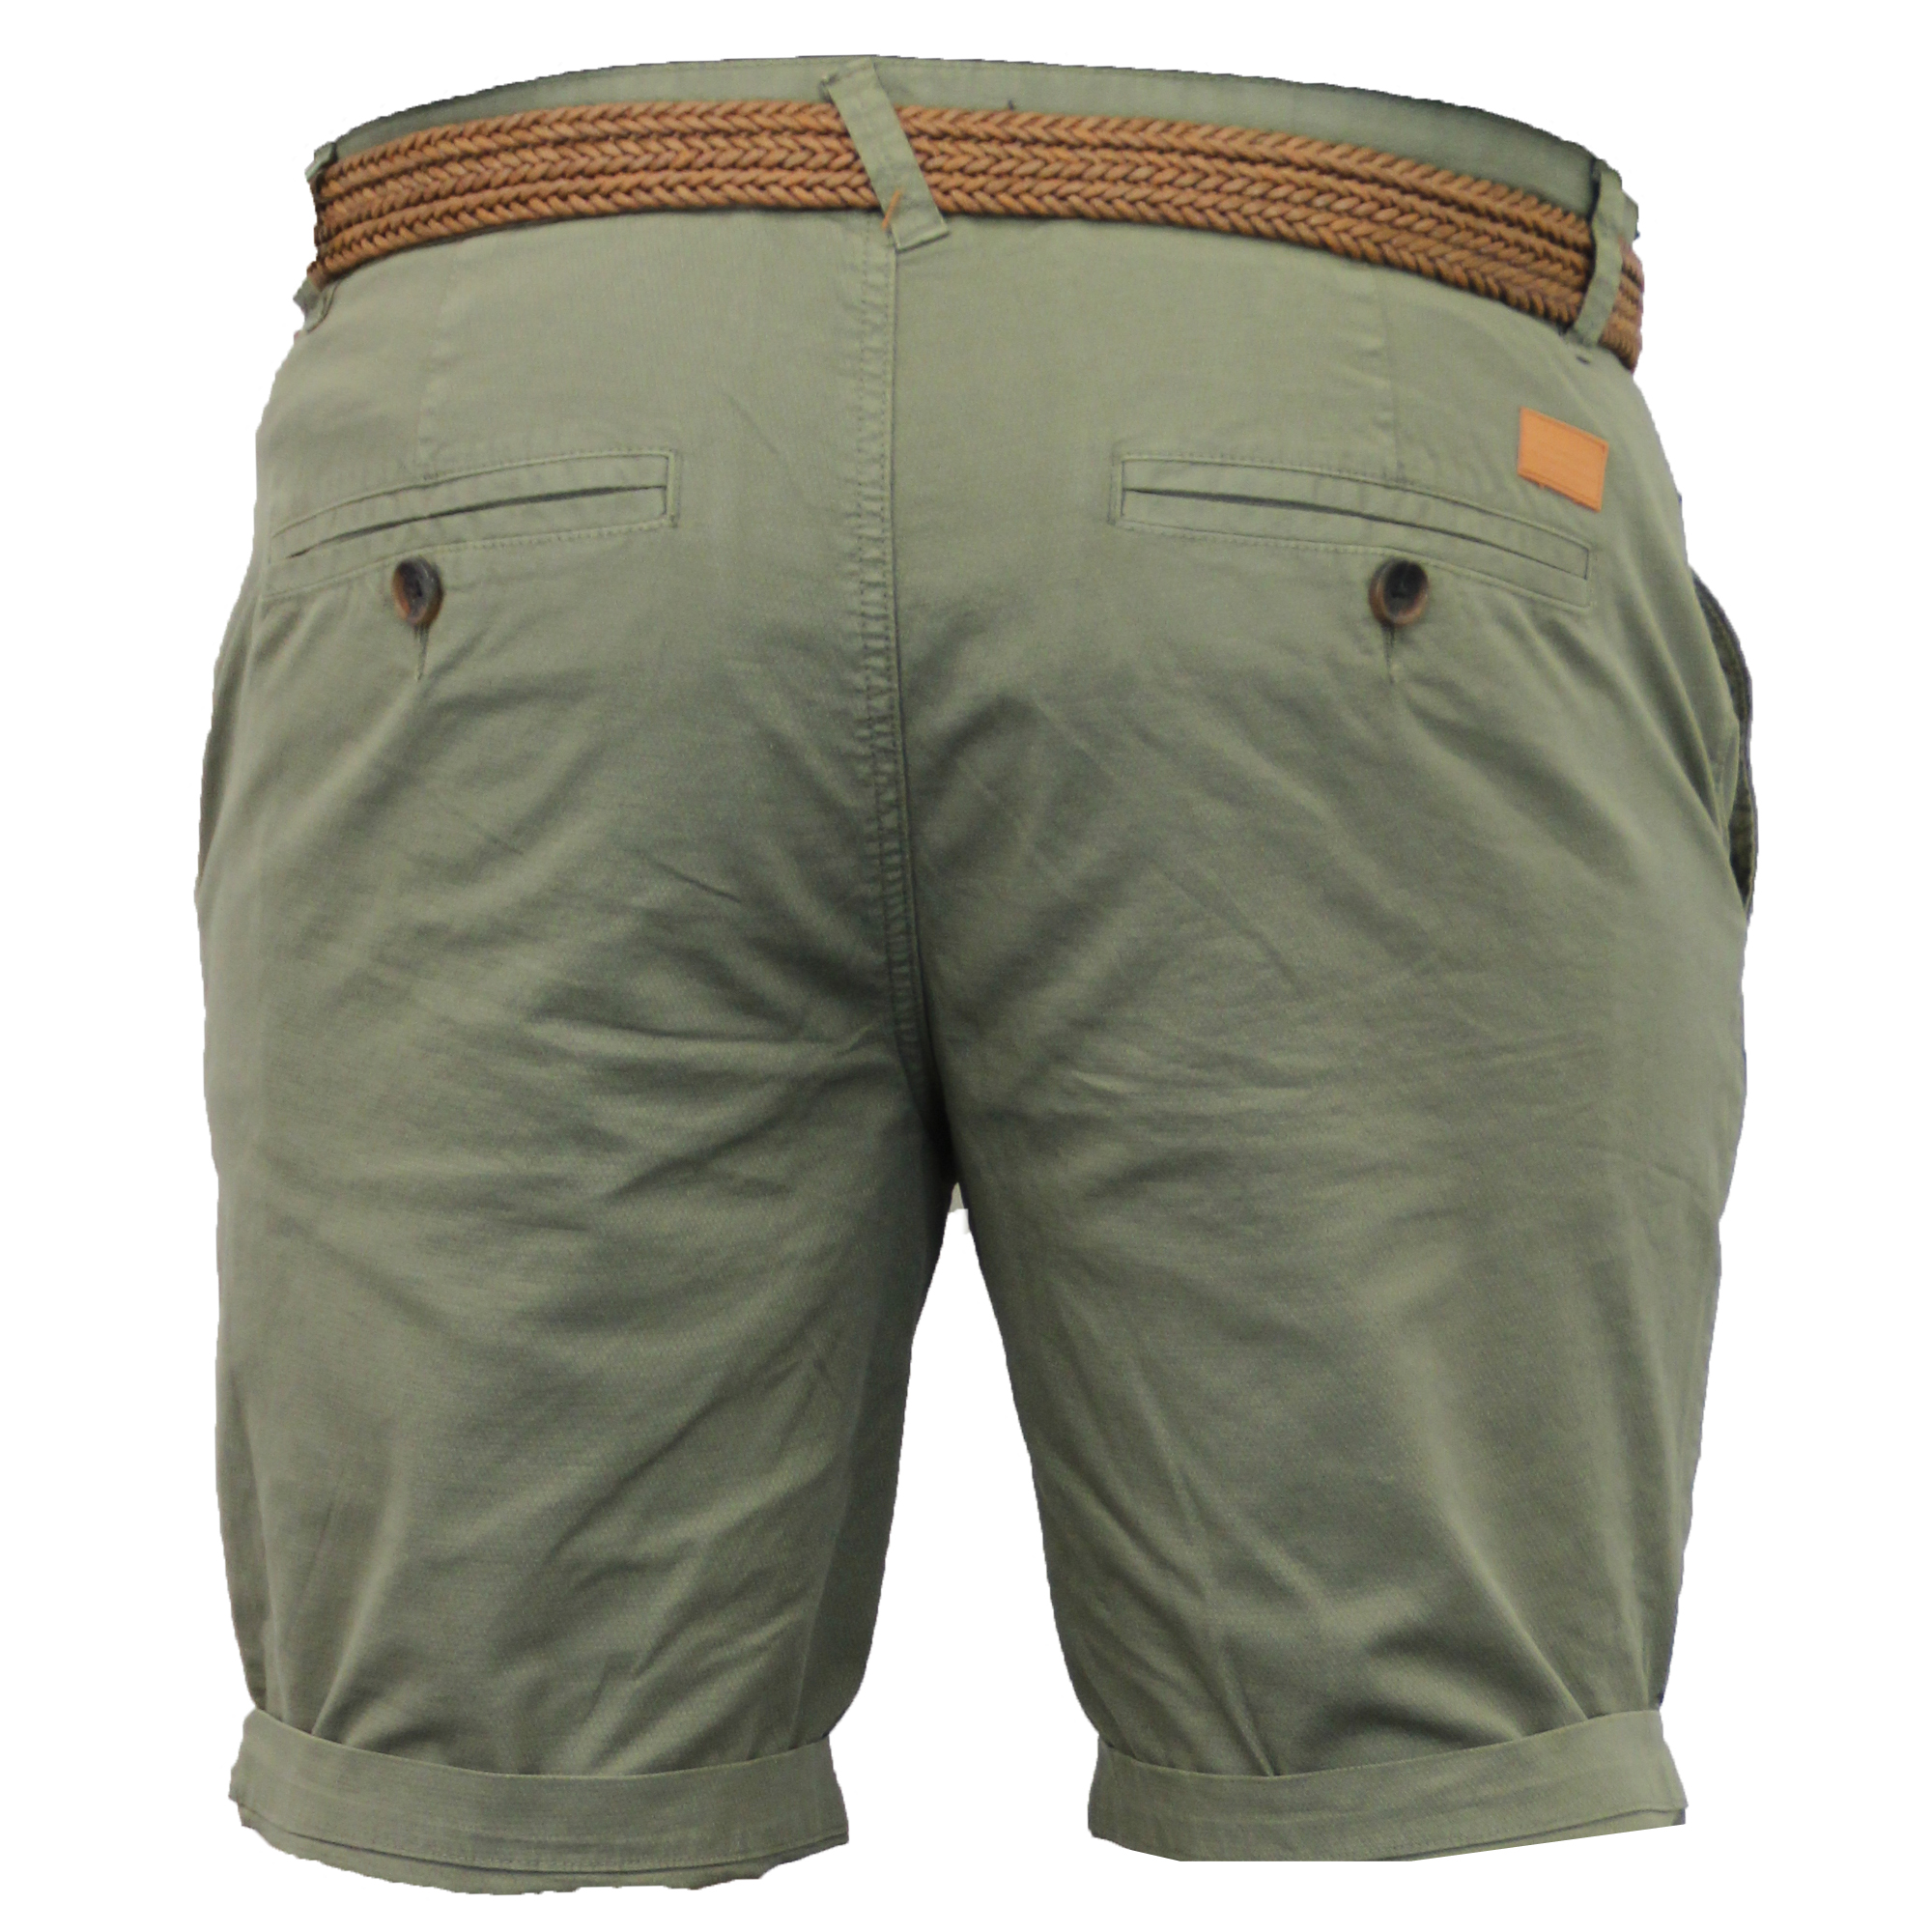 Mens-Chino-Shorts-Threadbare-Belted-Westace-Pants-Knee-Length-Roll-Up-Summer-New thumbnail 8